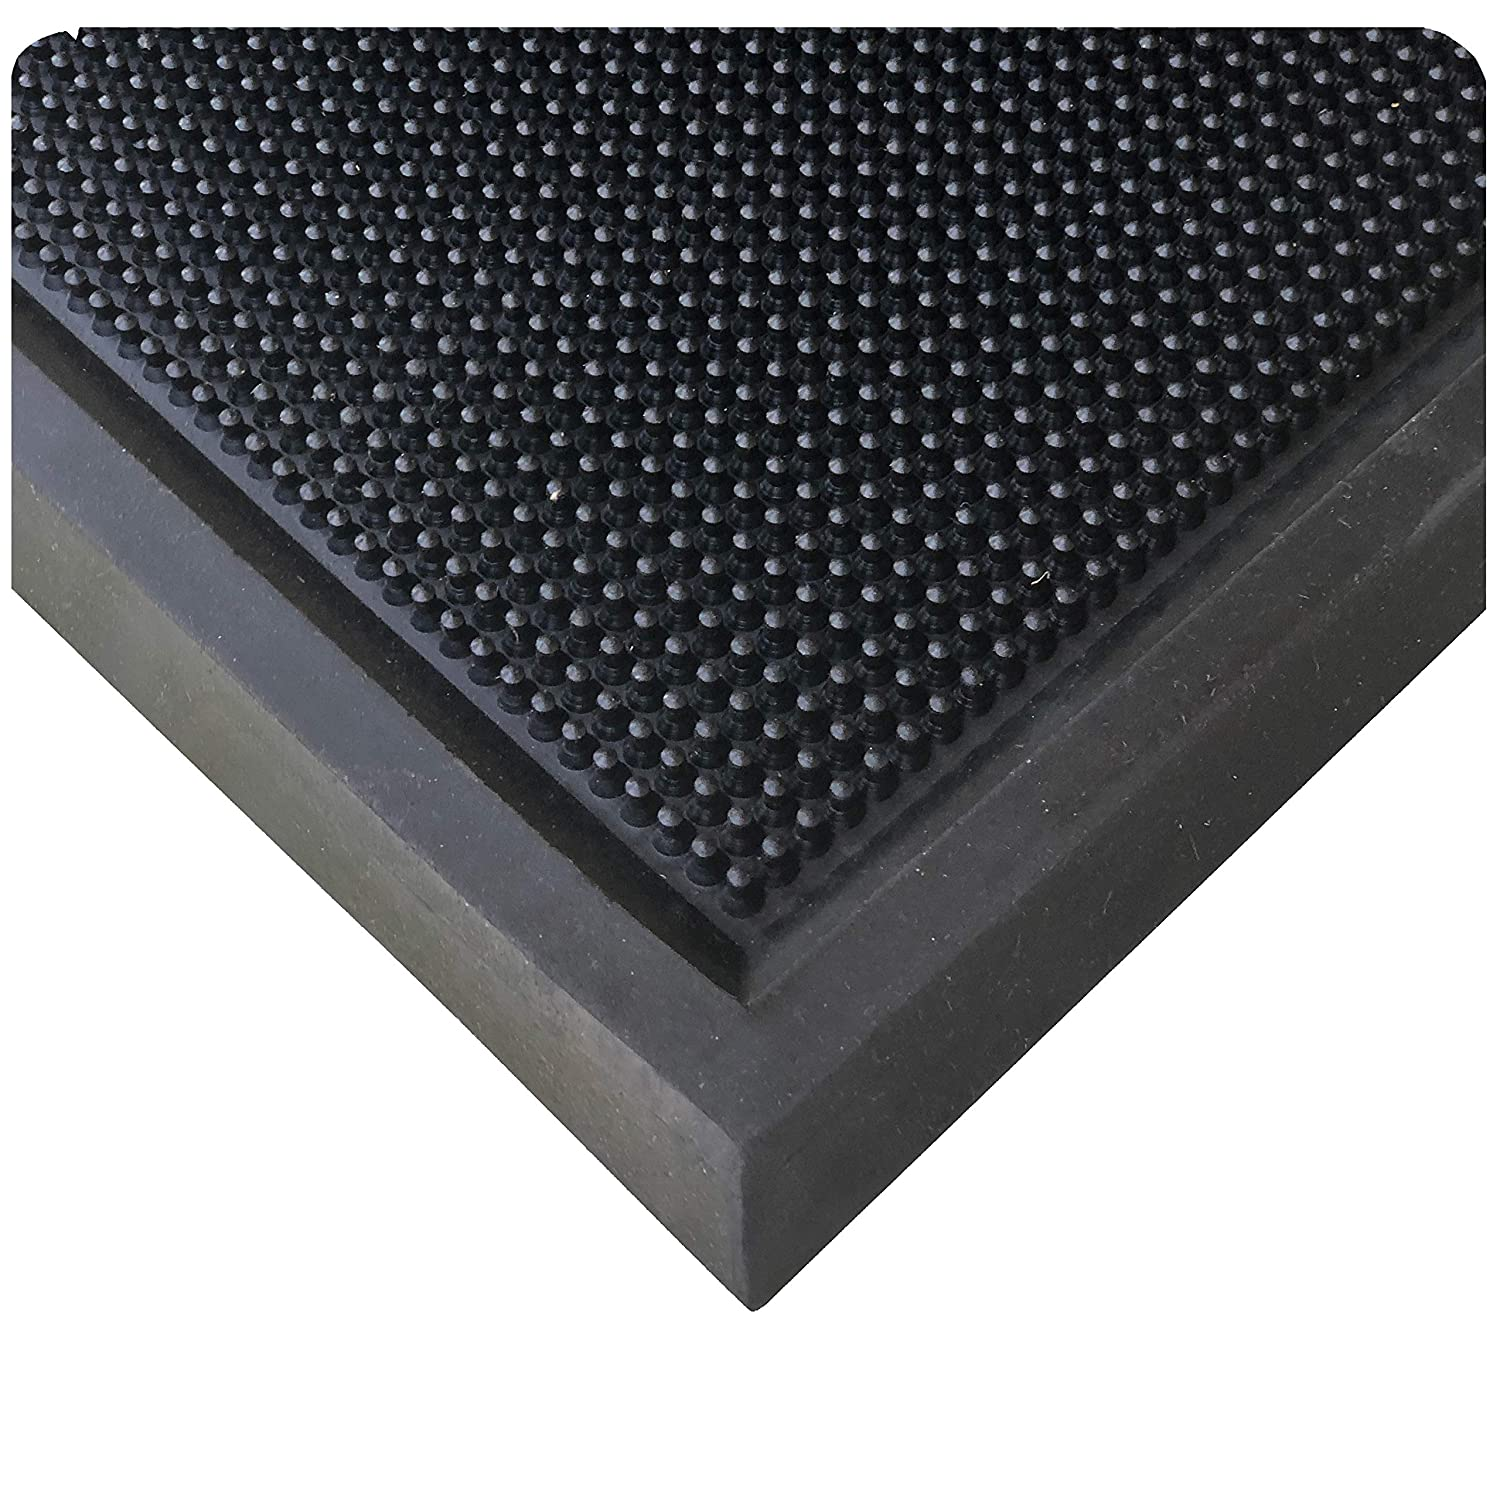 Wearwell Natural Rubber 222 Anti-Fatigue Sanitizing Footbath Mat, for Food Processing Facilities, 3/4